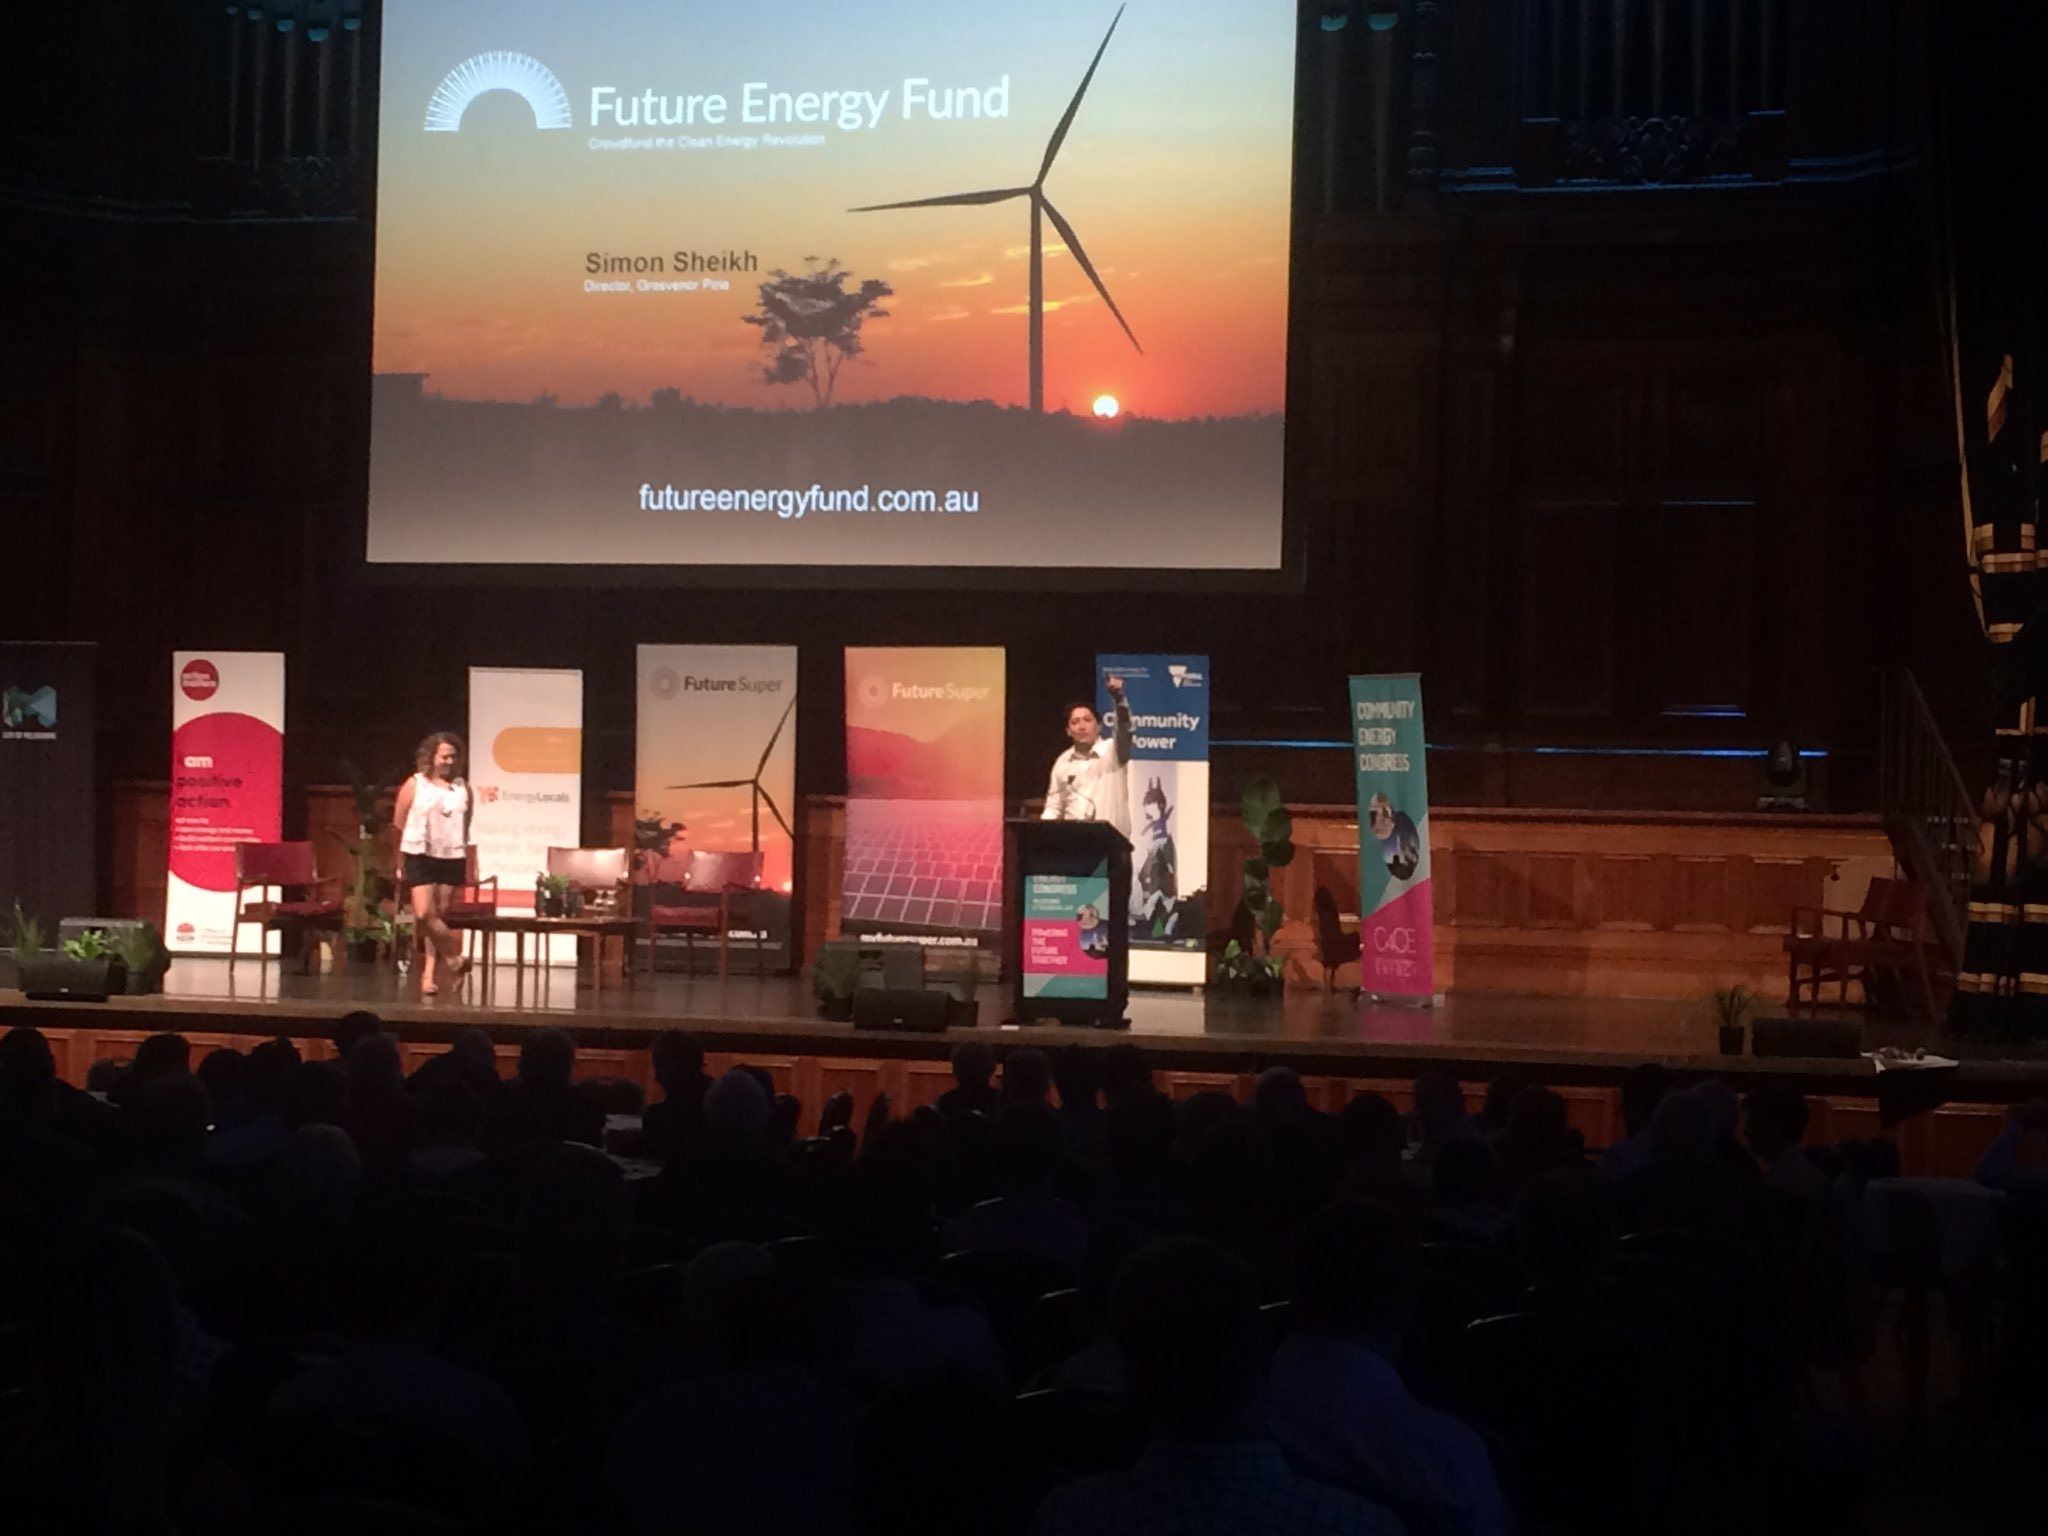 Great to see my @myfuturesuper co-founder @SimonSheikh launching the Future Energy Fund at #CECongress17 https://t.co/Qr4wZqQ81w